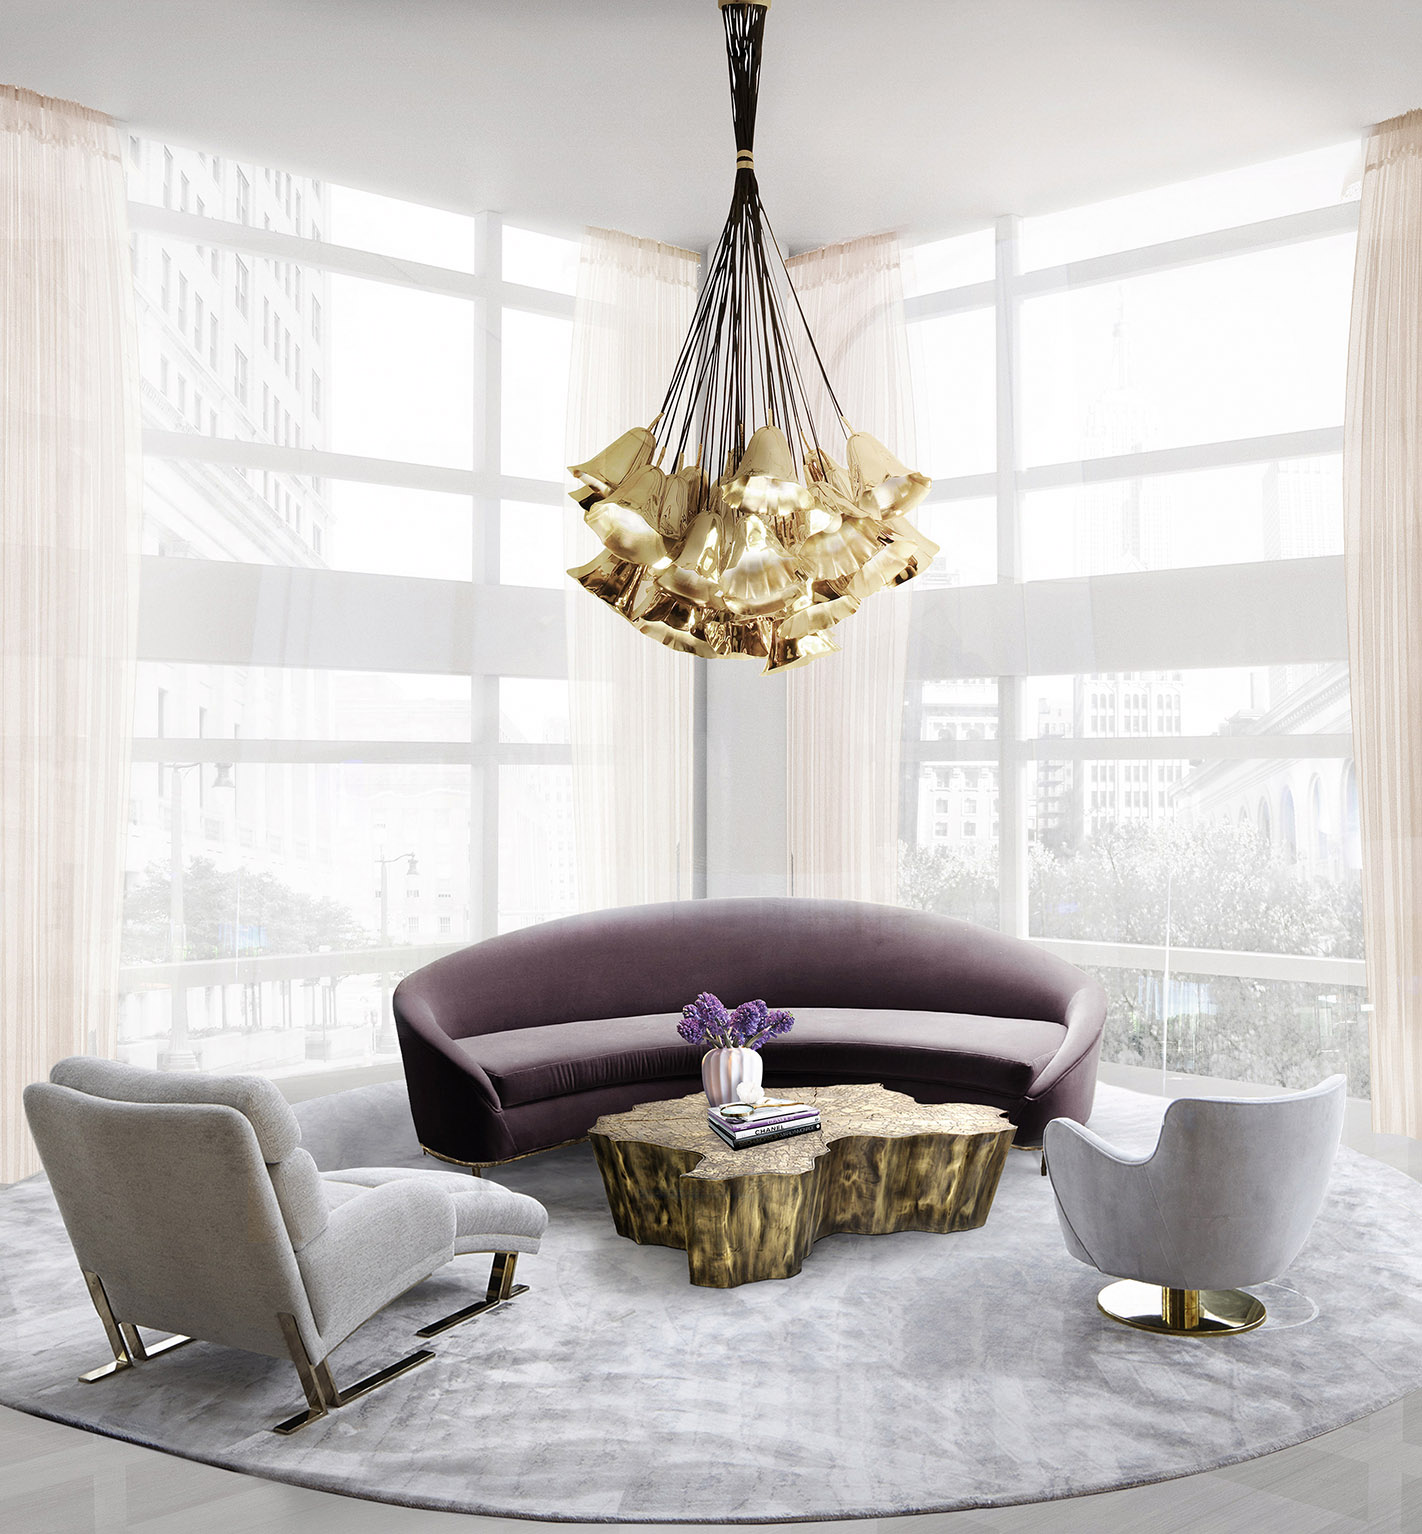 The Perfect Design Pieces by KOKET to Create a Beautiful Living Room design pieces by koket The Perfect Design Pieces by KOKET to Create a Beautiful Living Room The Perfect Design Pieces by KOKET to Create a Beautiful Living Room3